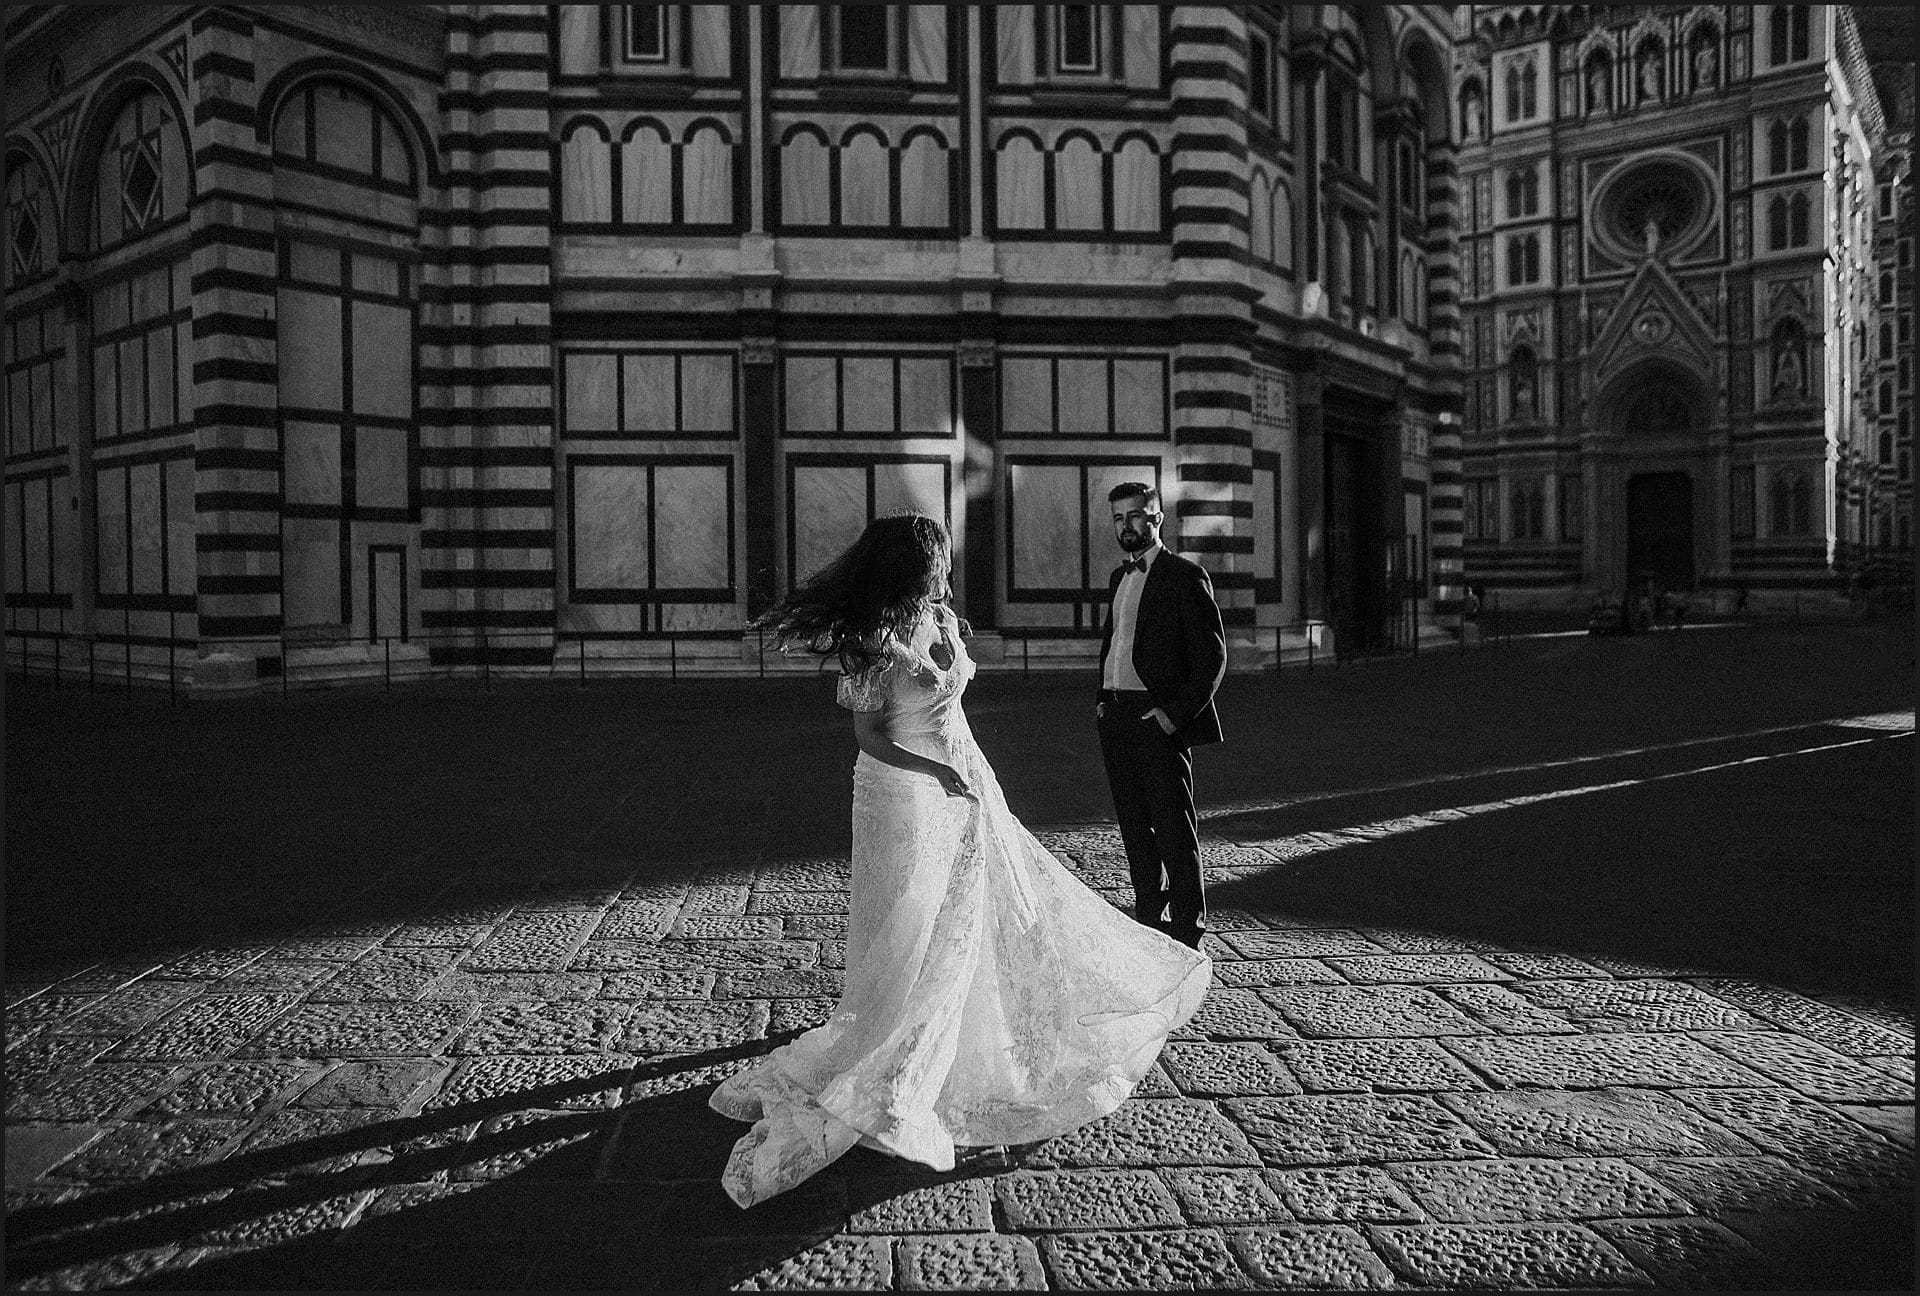 bride, groom, wedding dress, florence, piazza del duomo, wedding in tuscany